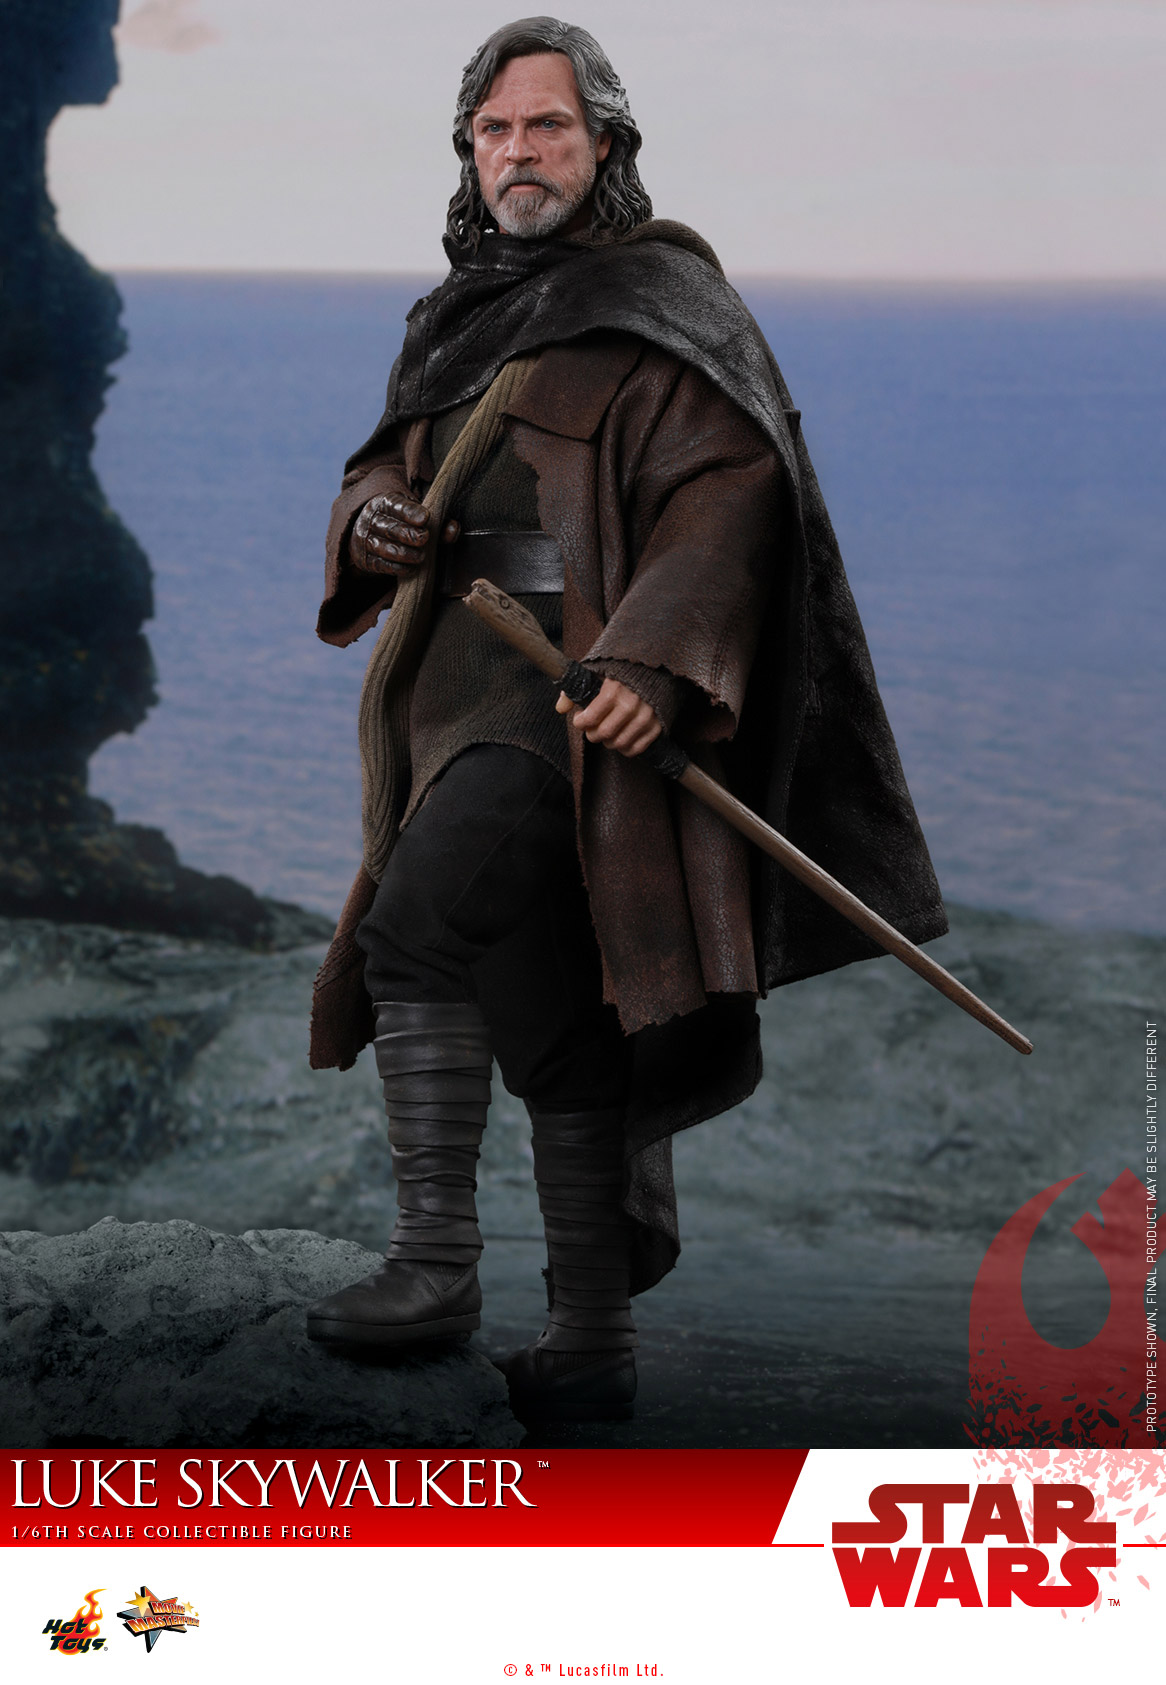 Hot-Toys---Star-Wars---Luke-Skywalker-collectible-figure_PR1